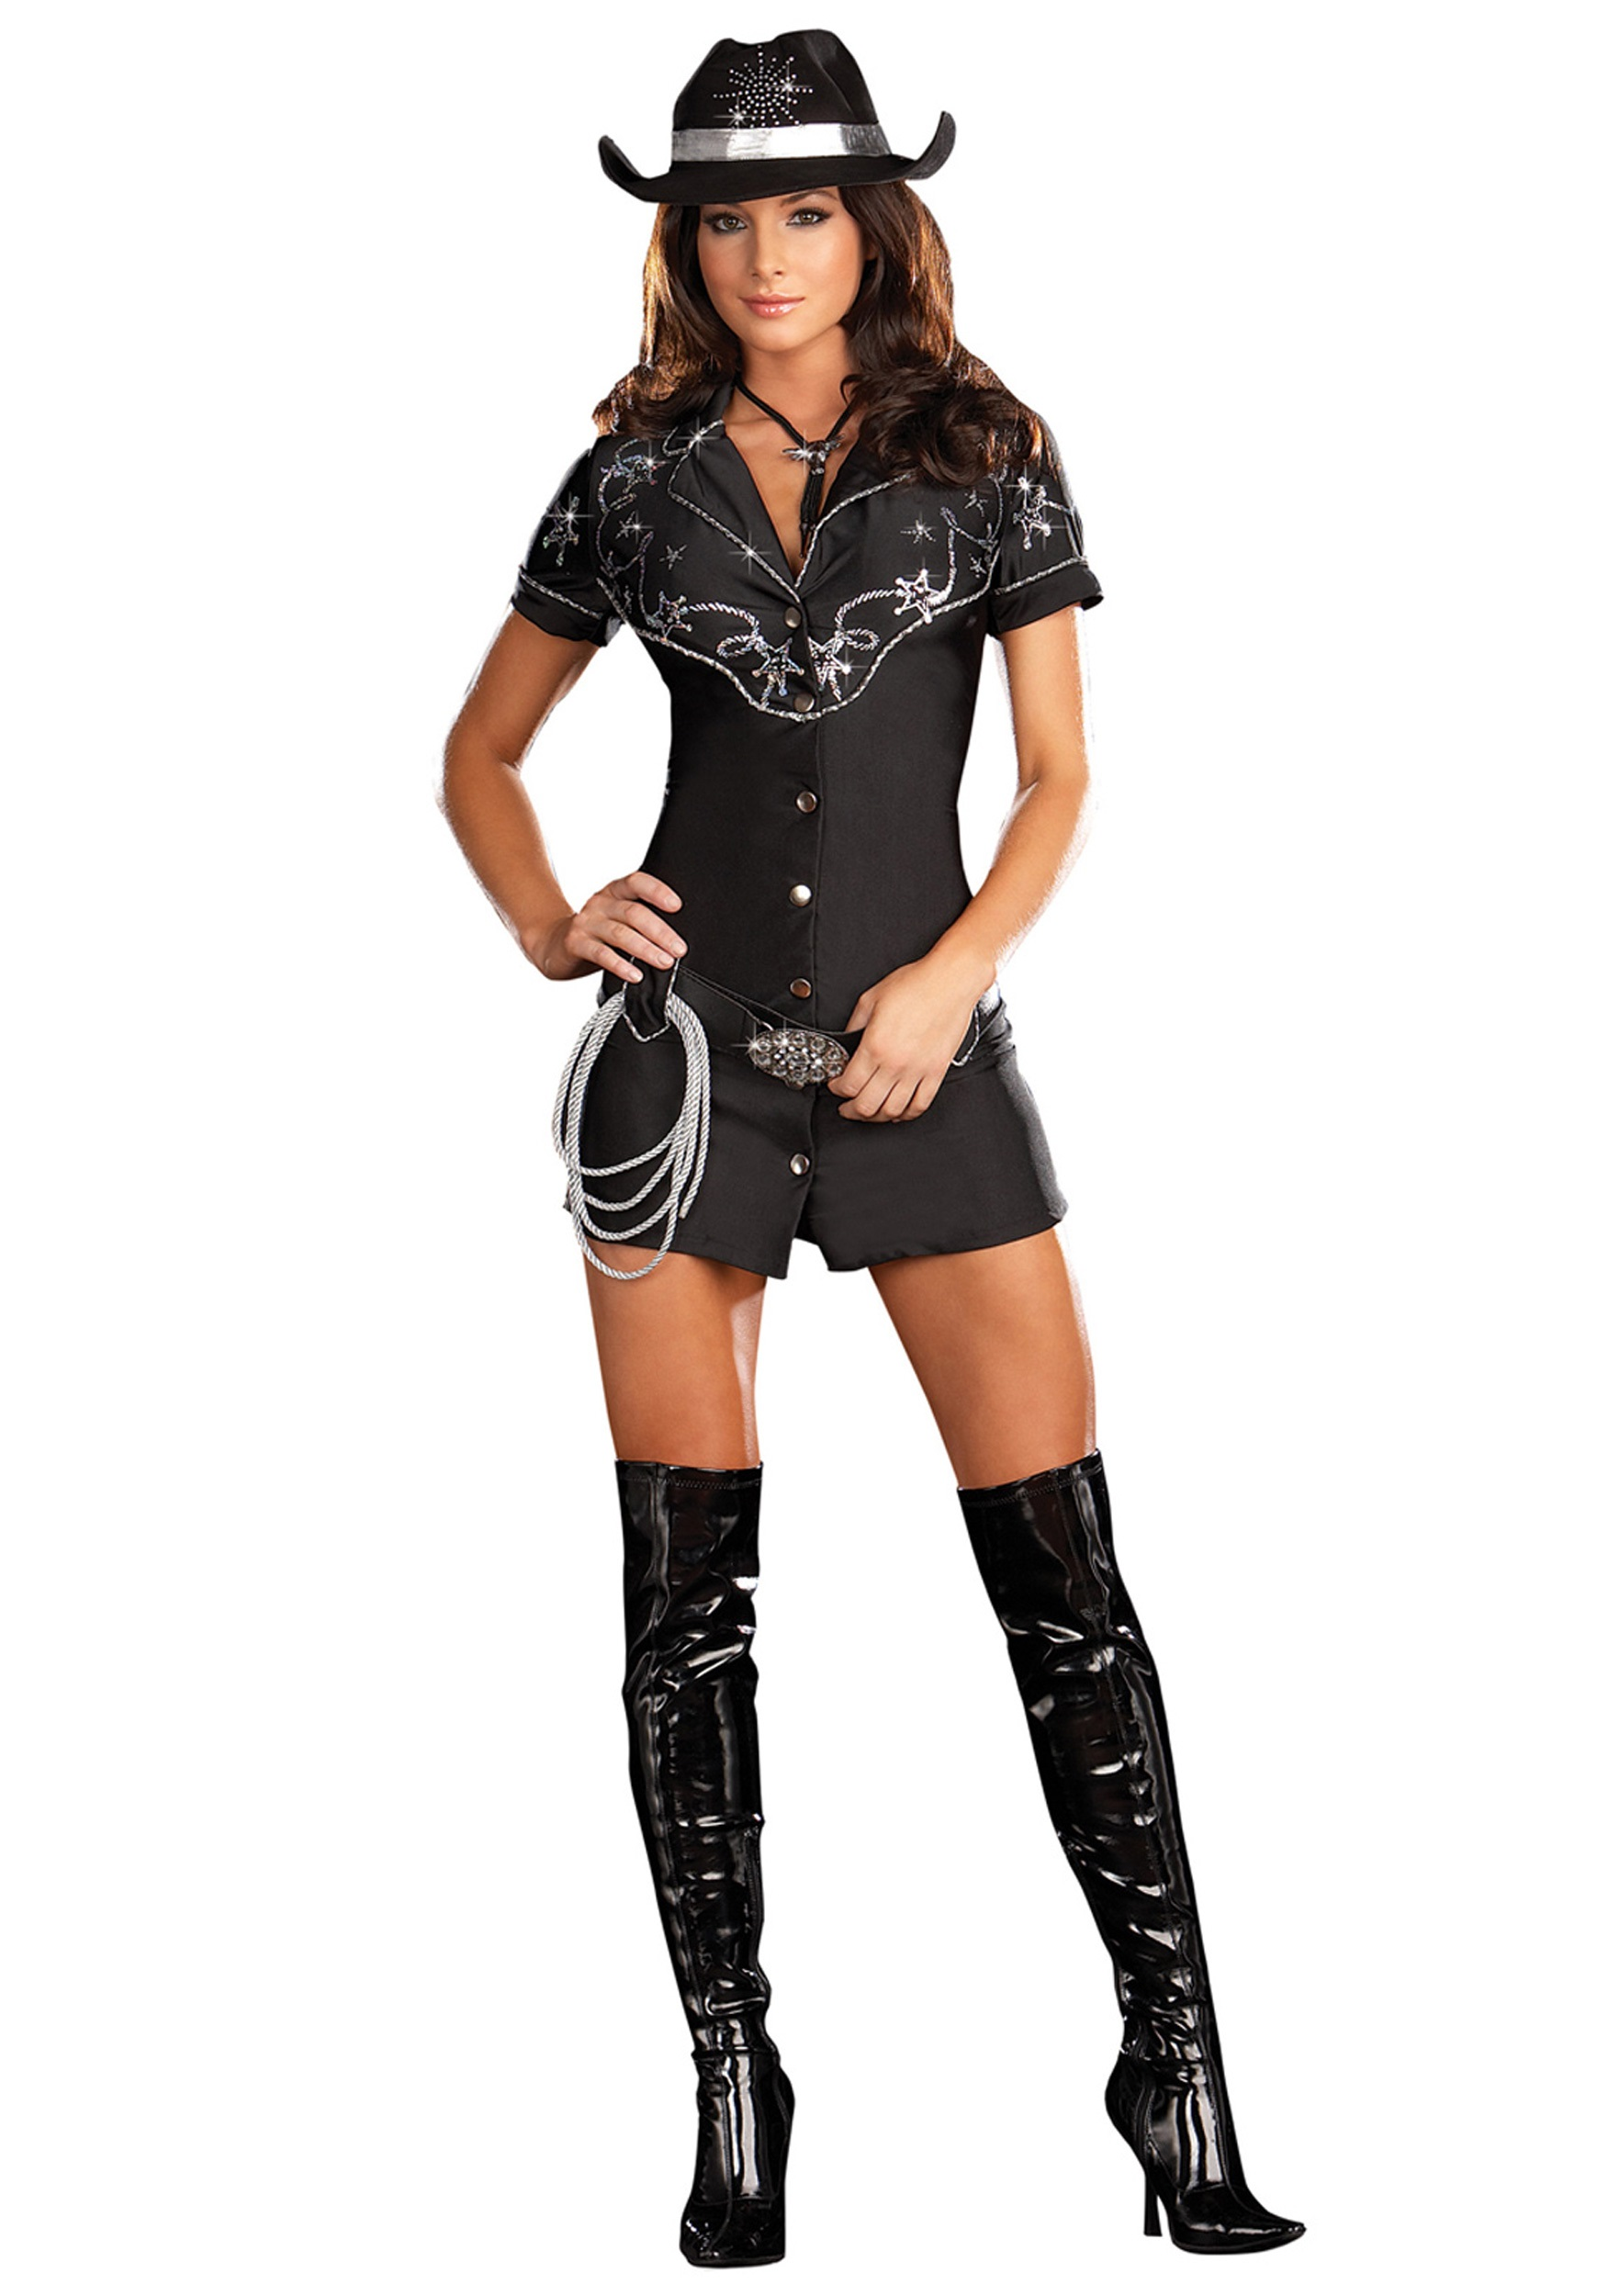 Rhinestone Cowgirl Costume  sc 1 st  Halloween Costumes : cow girl halloween costumes  - Germanpascual.Com